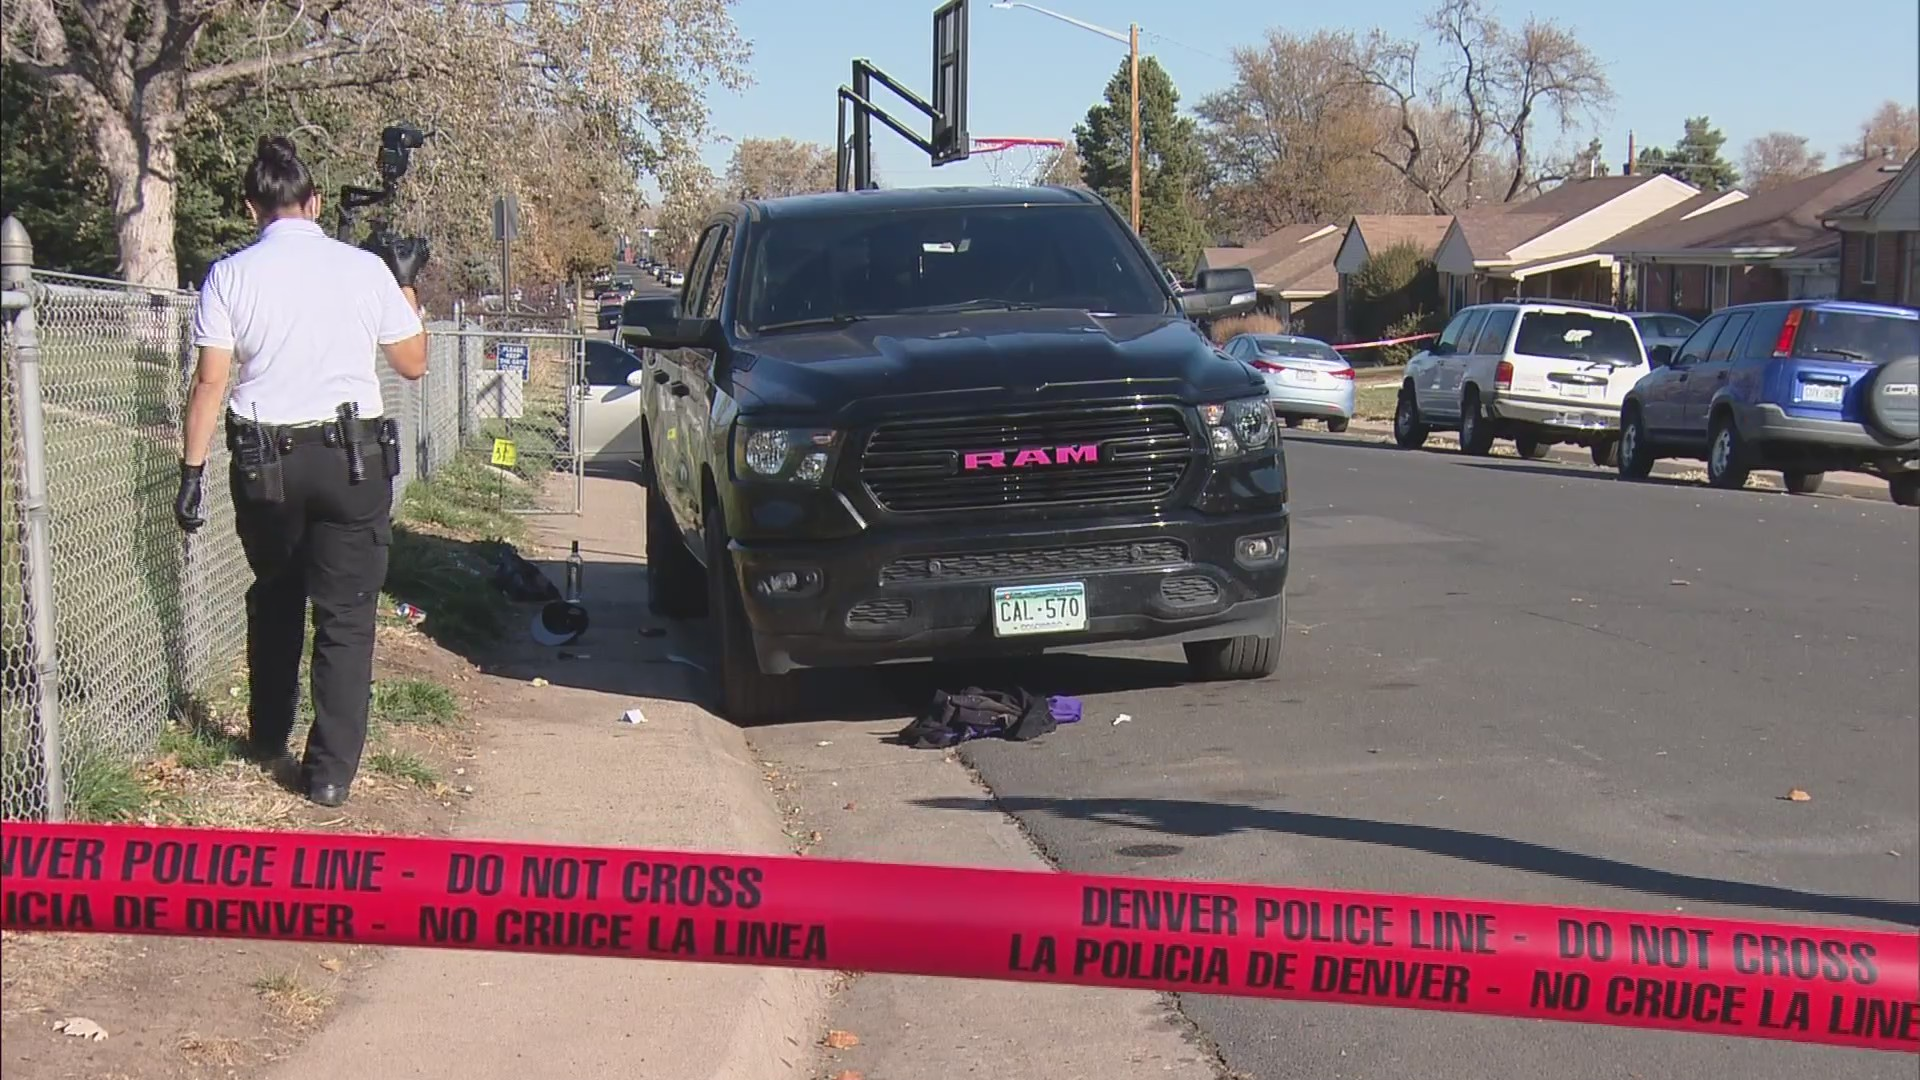 2nd Victim Who Died After Triple Shooting In Denver Identified As William O Keefe